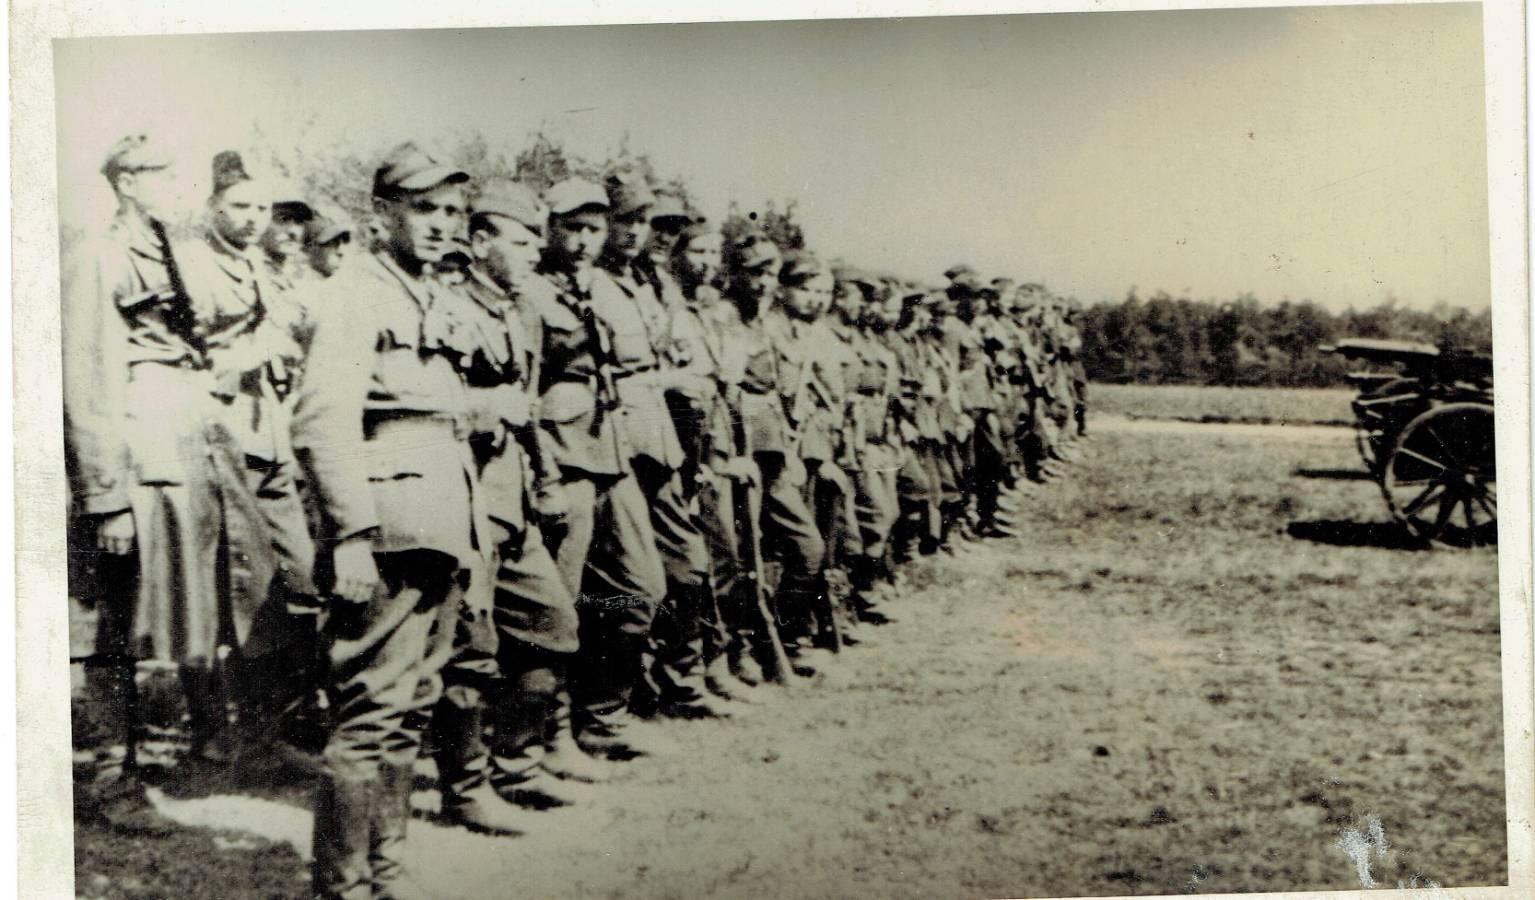 WWII soldiers standing in line on field